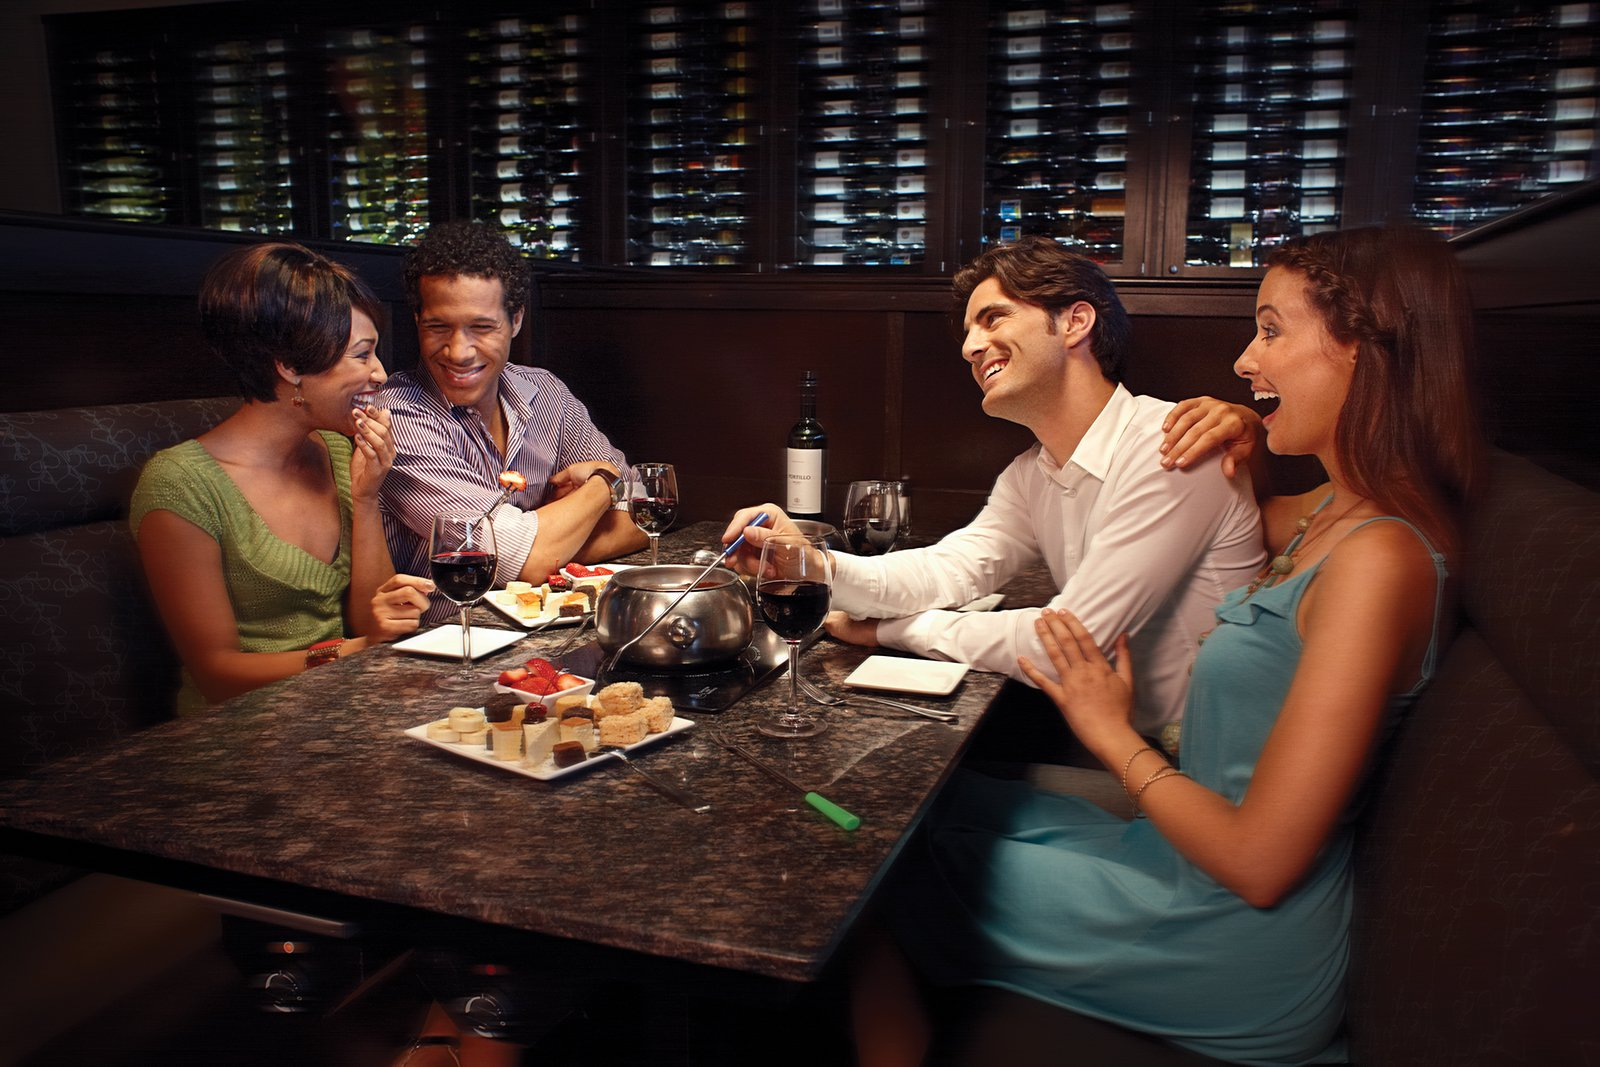 speed dating melting pot Date ideas- nassau county restaurants  the melting pot 2377 broadhollow rd (route 110)  speed dating nyc.